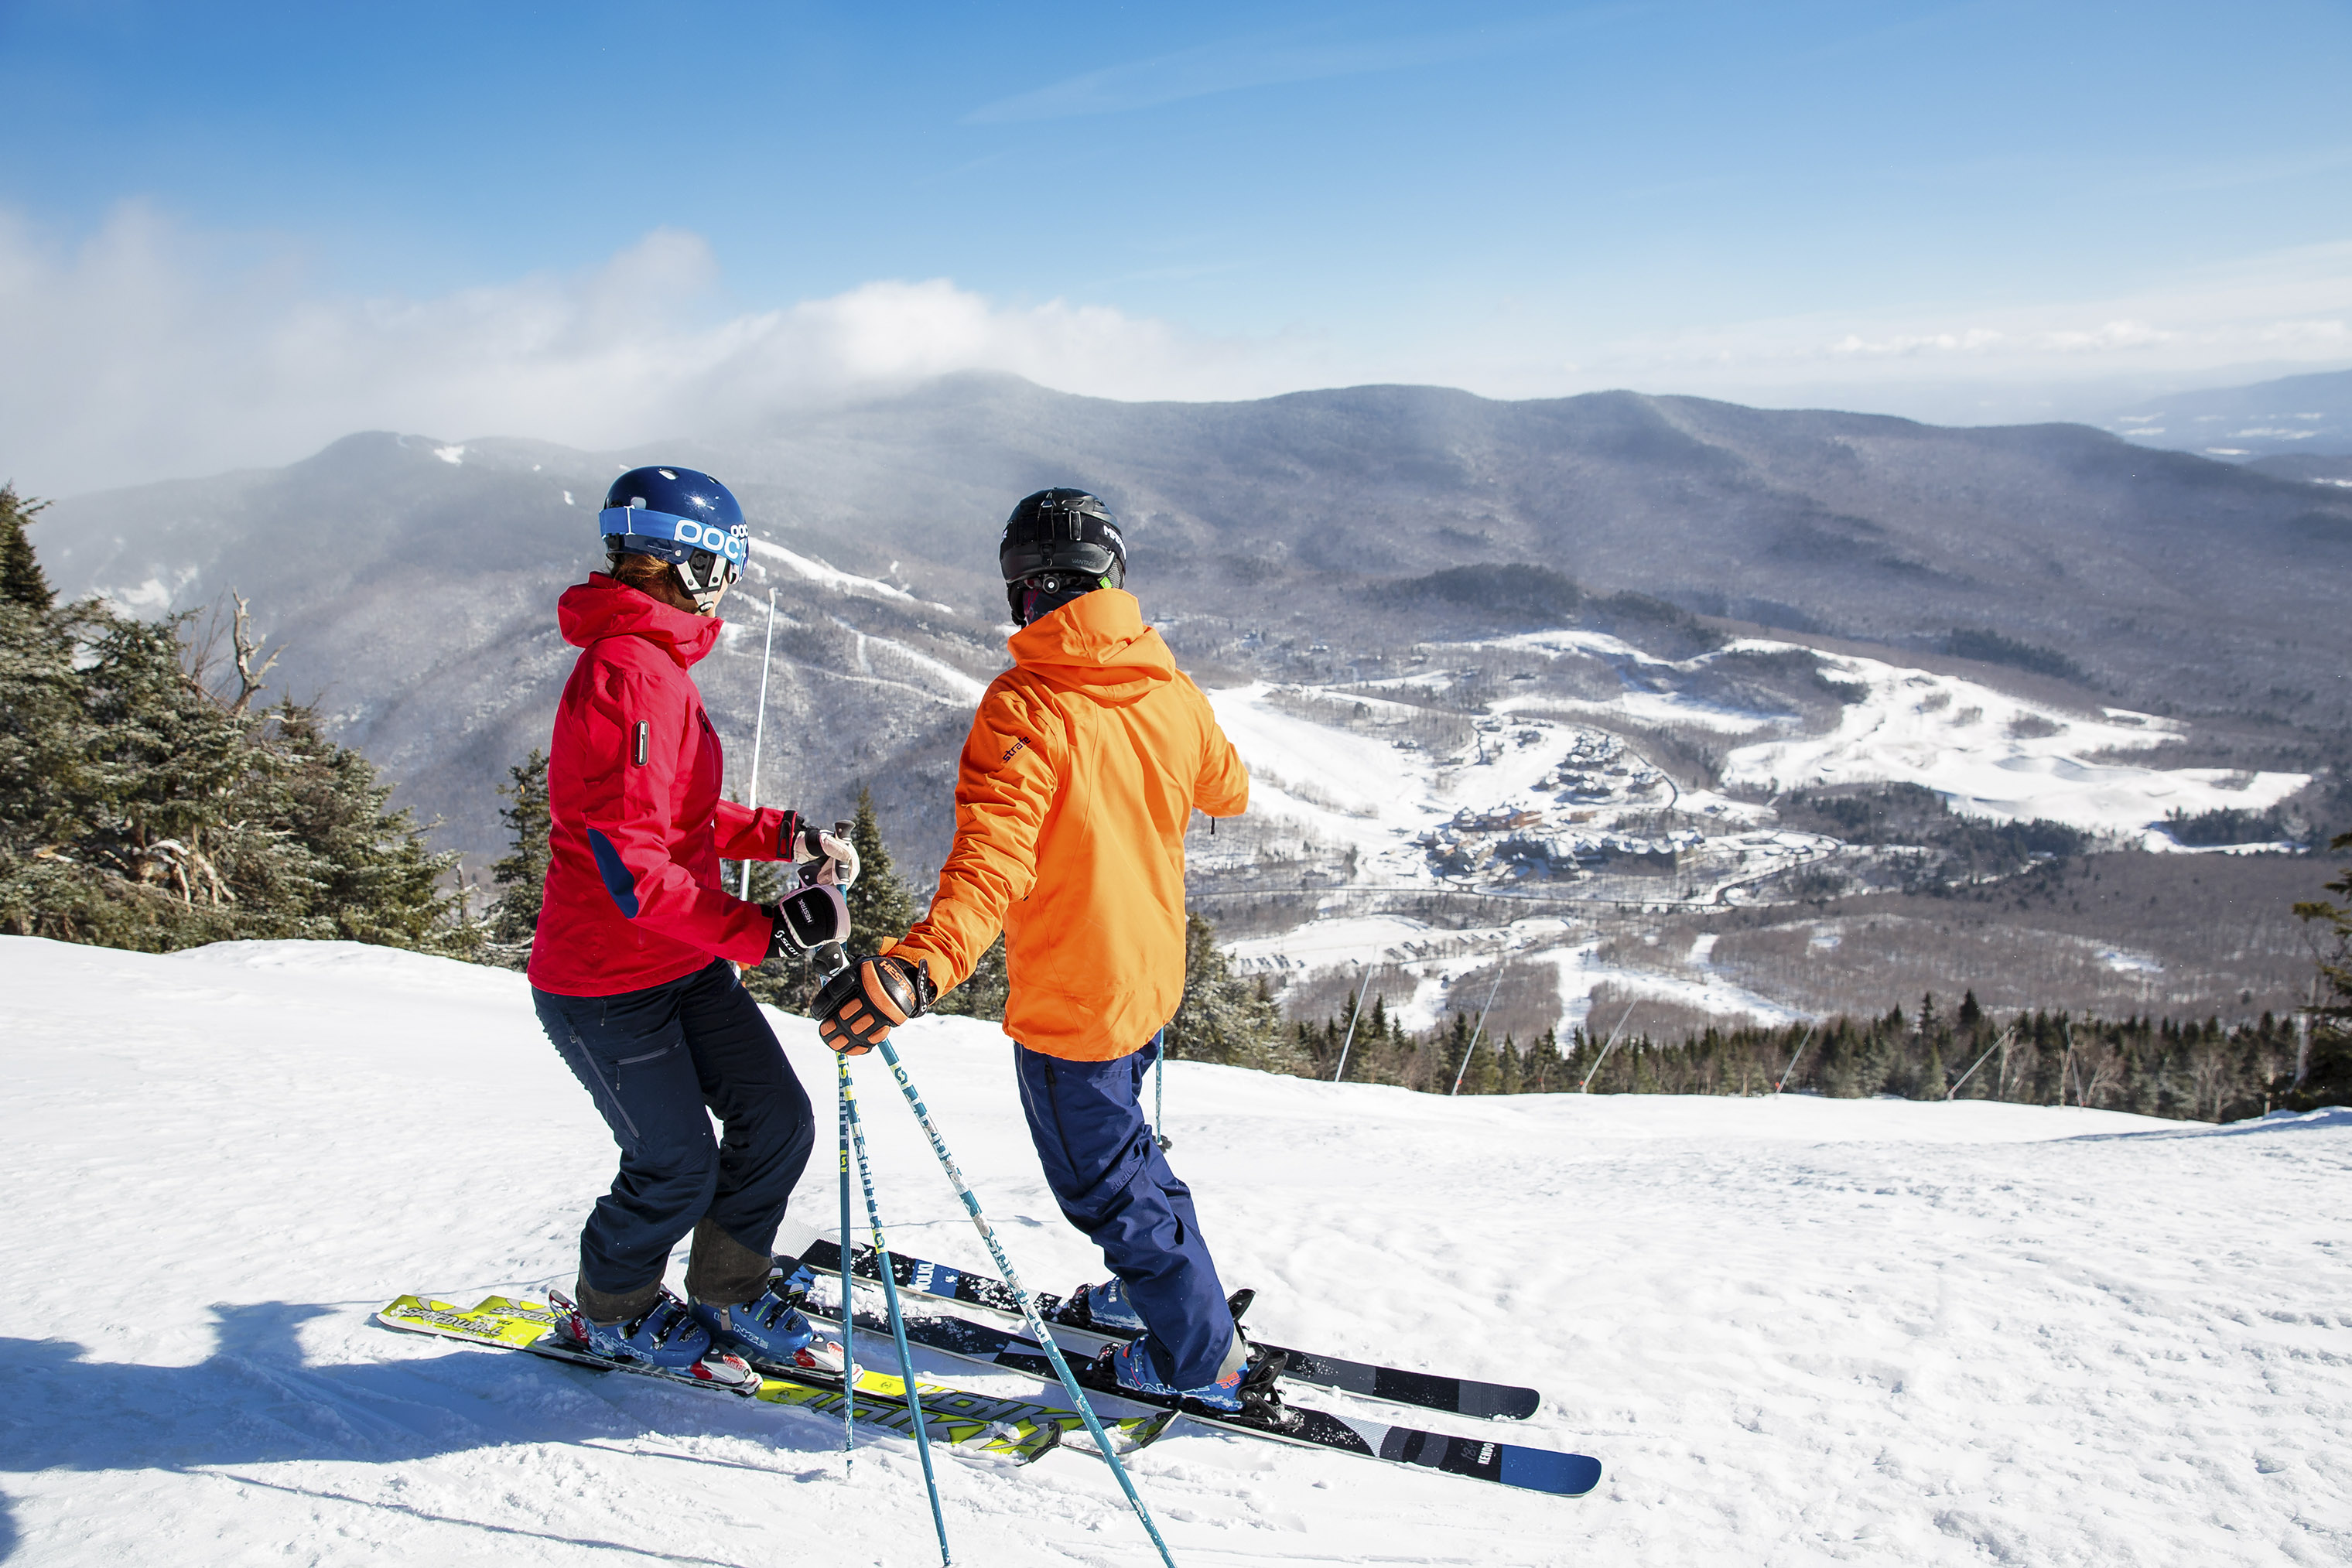 Stowe Mountain Resort remains open during all four seasons.